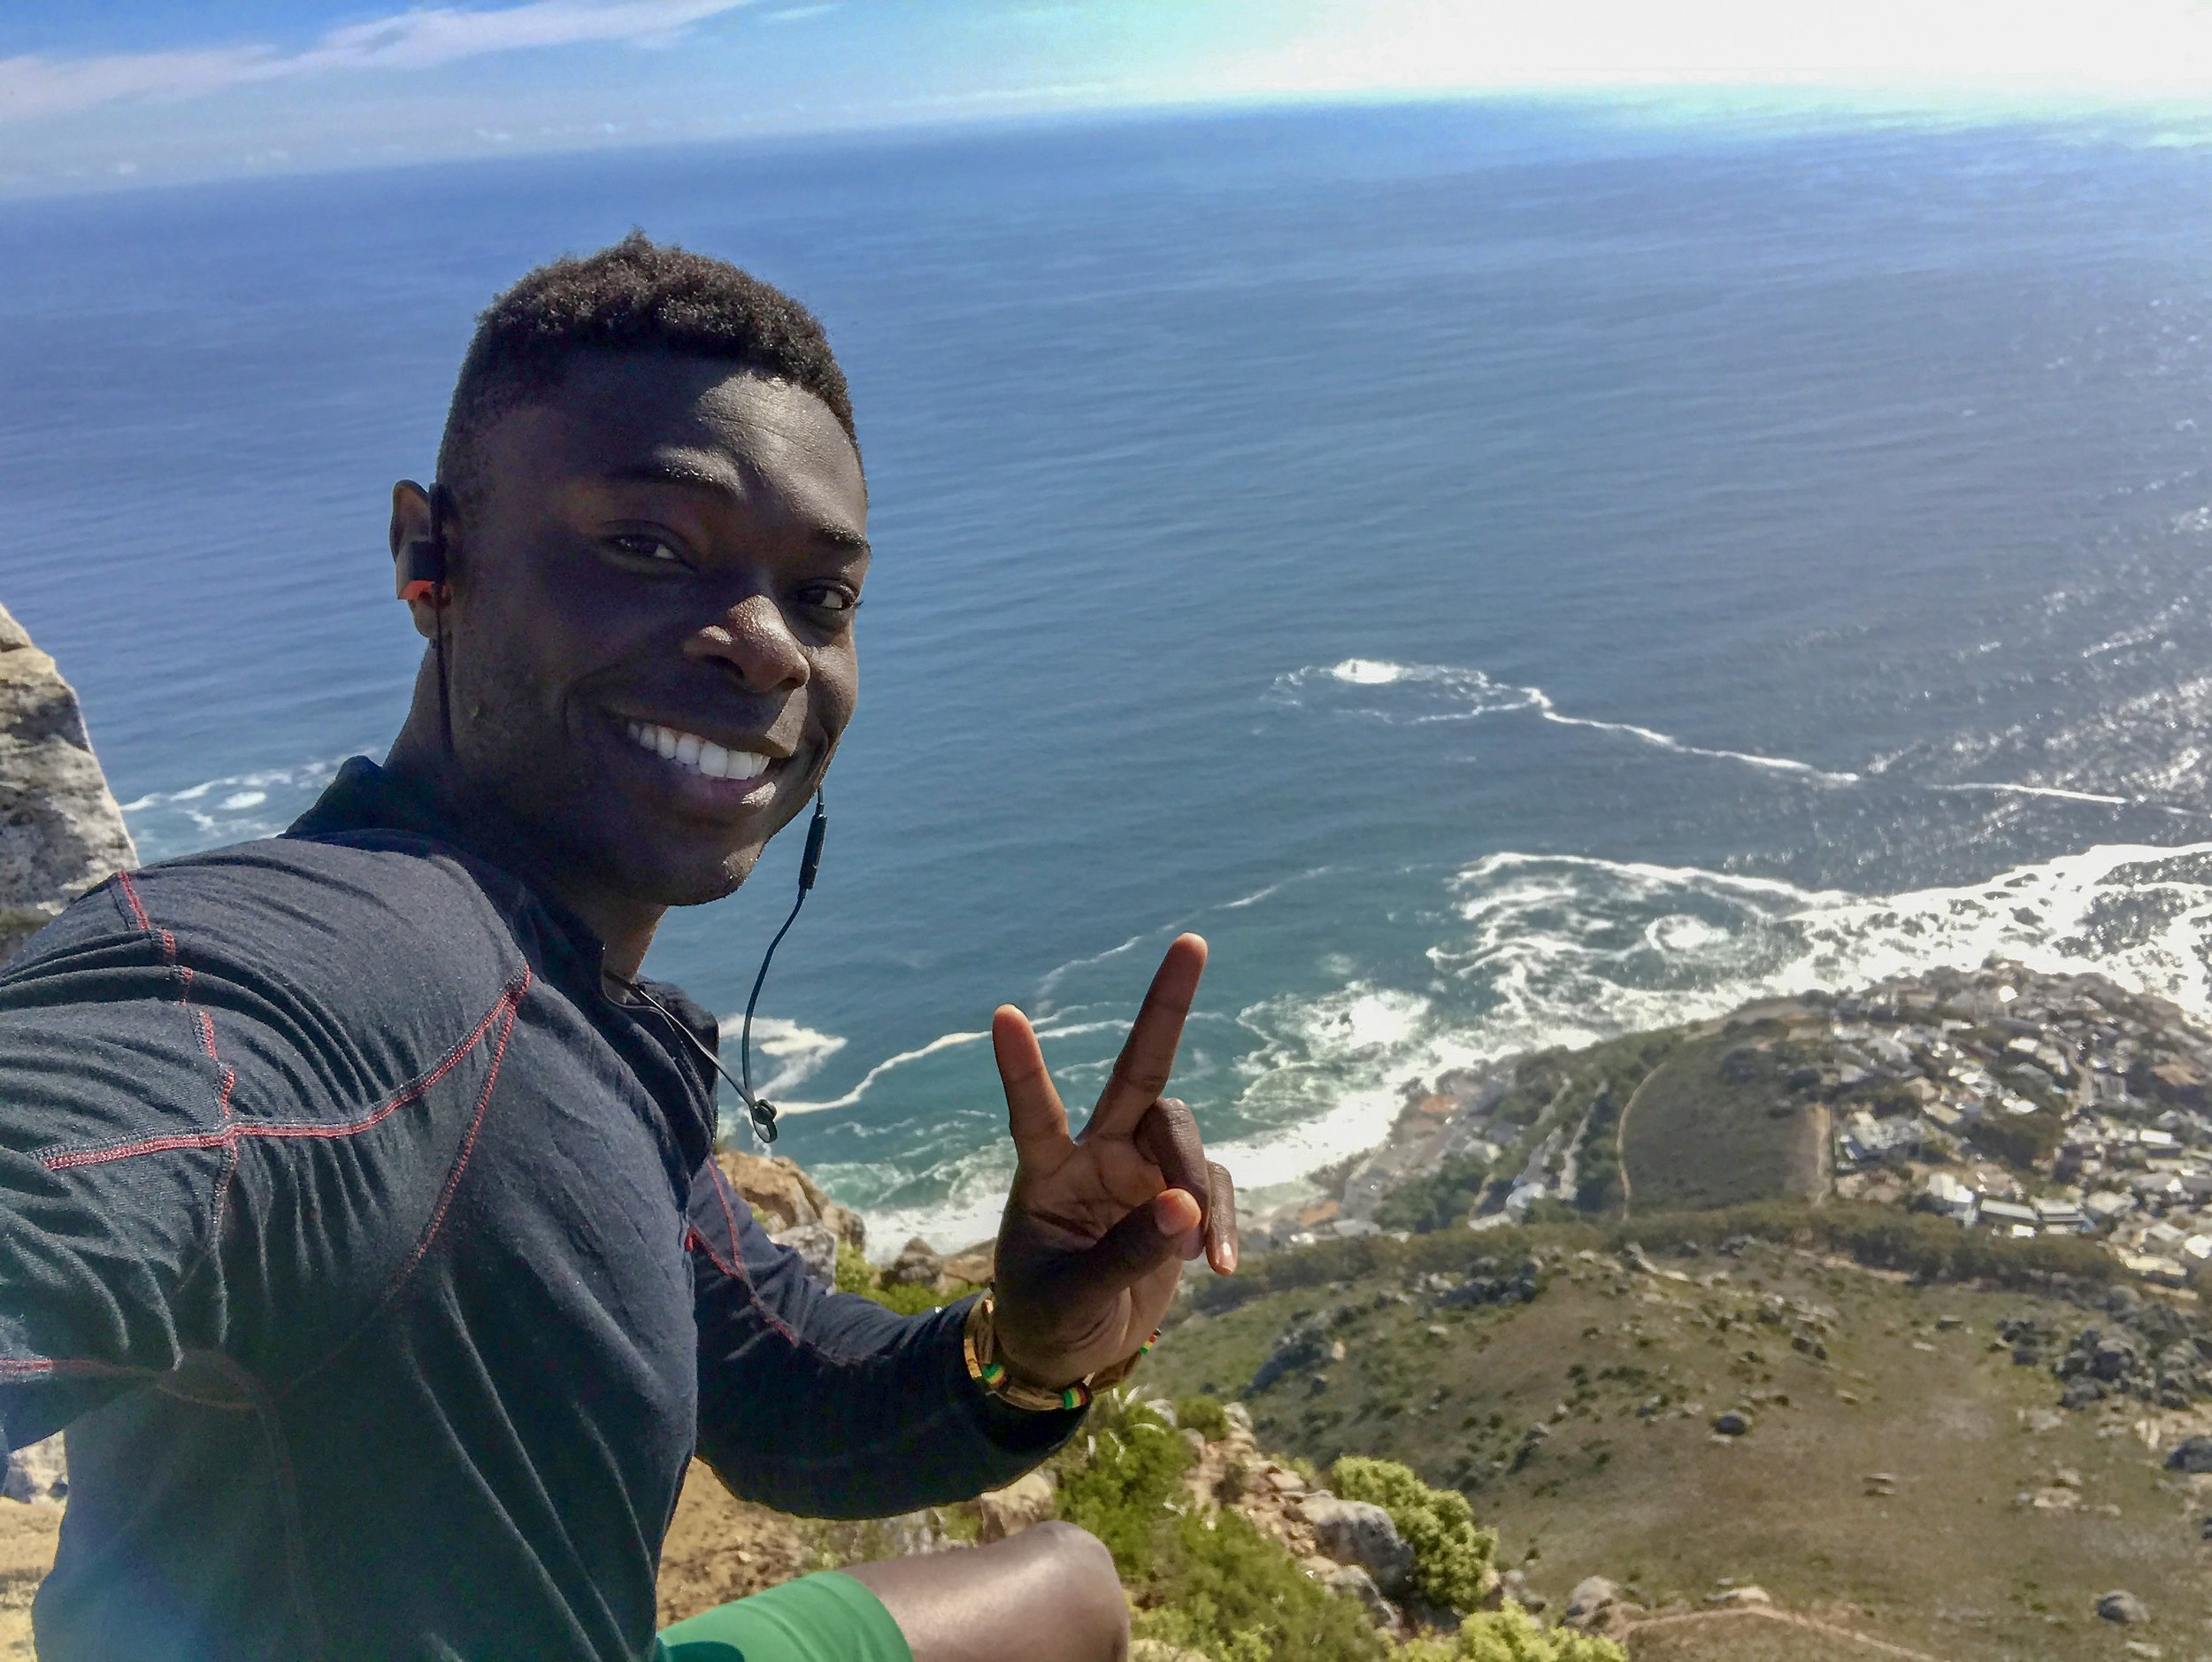 Peace out, from Lion's Head